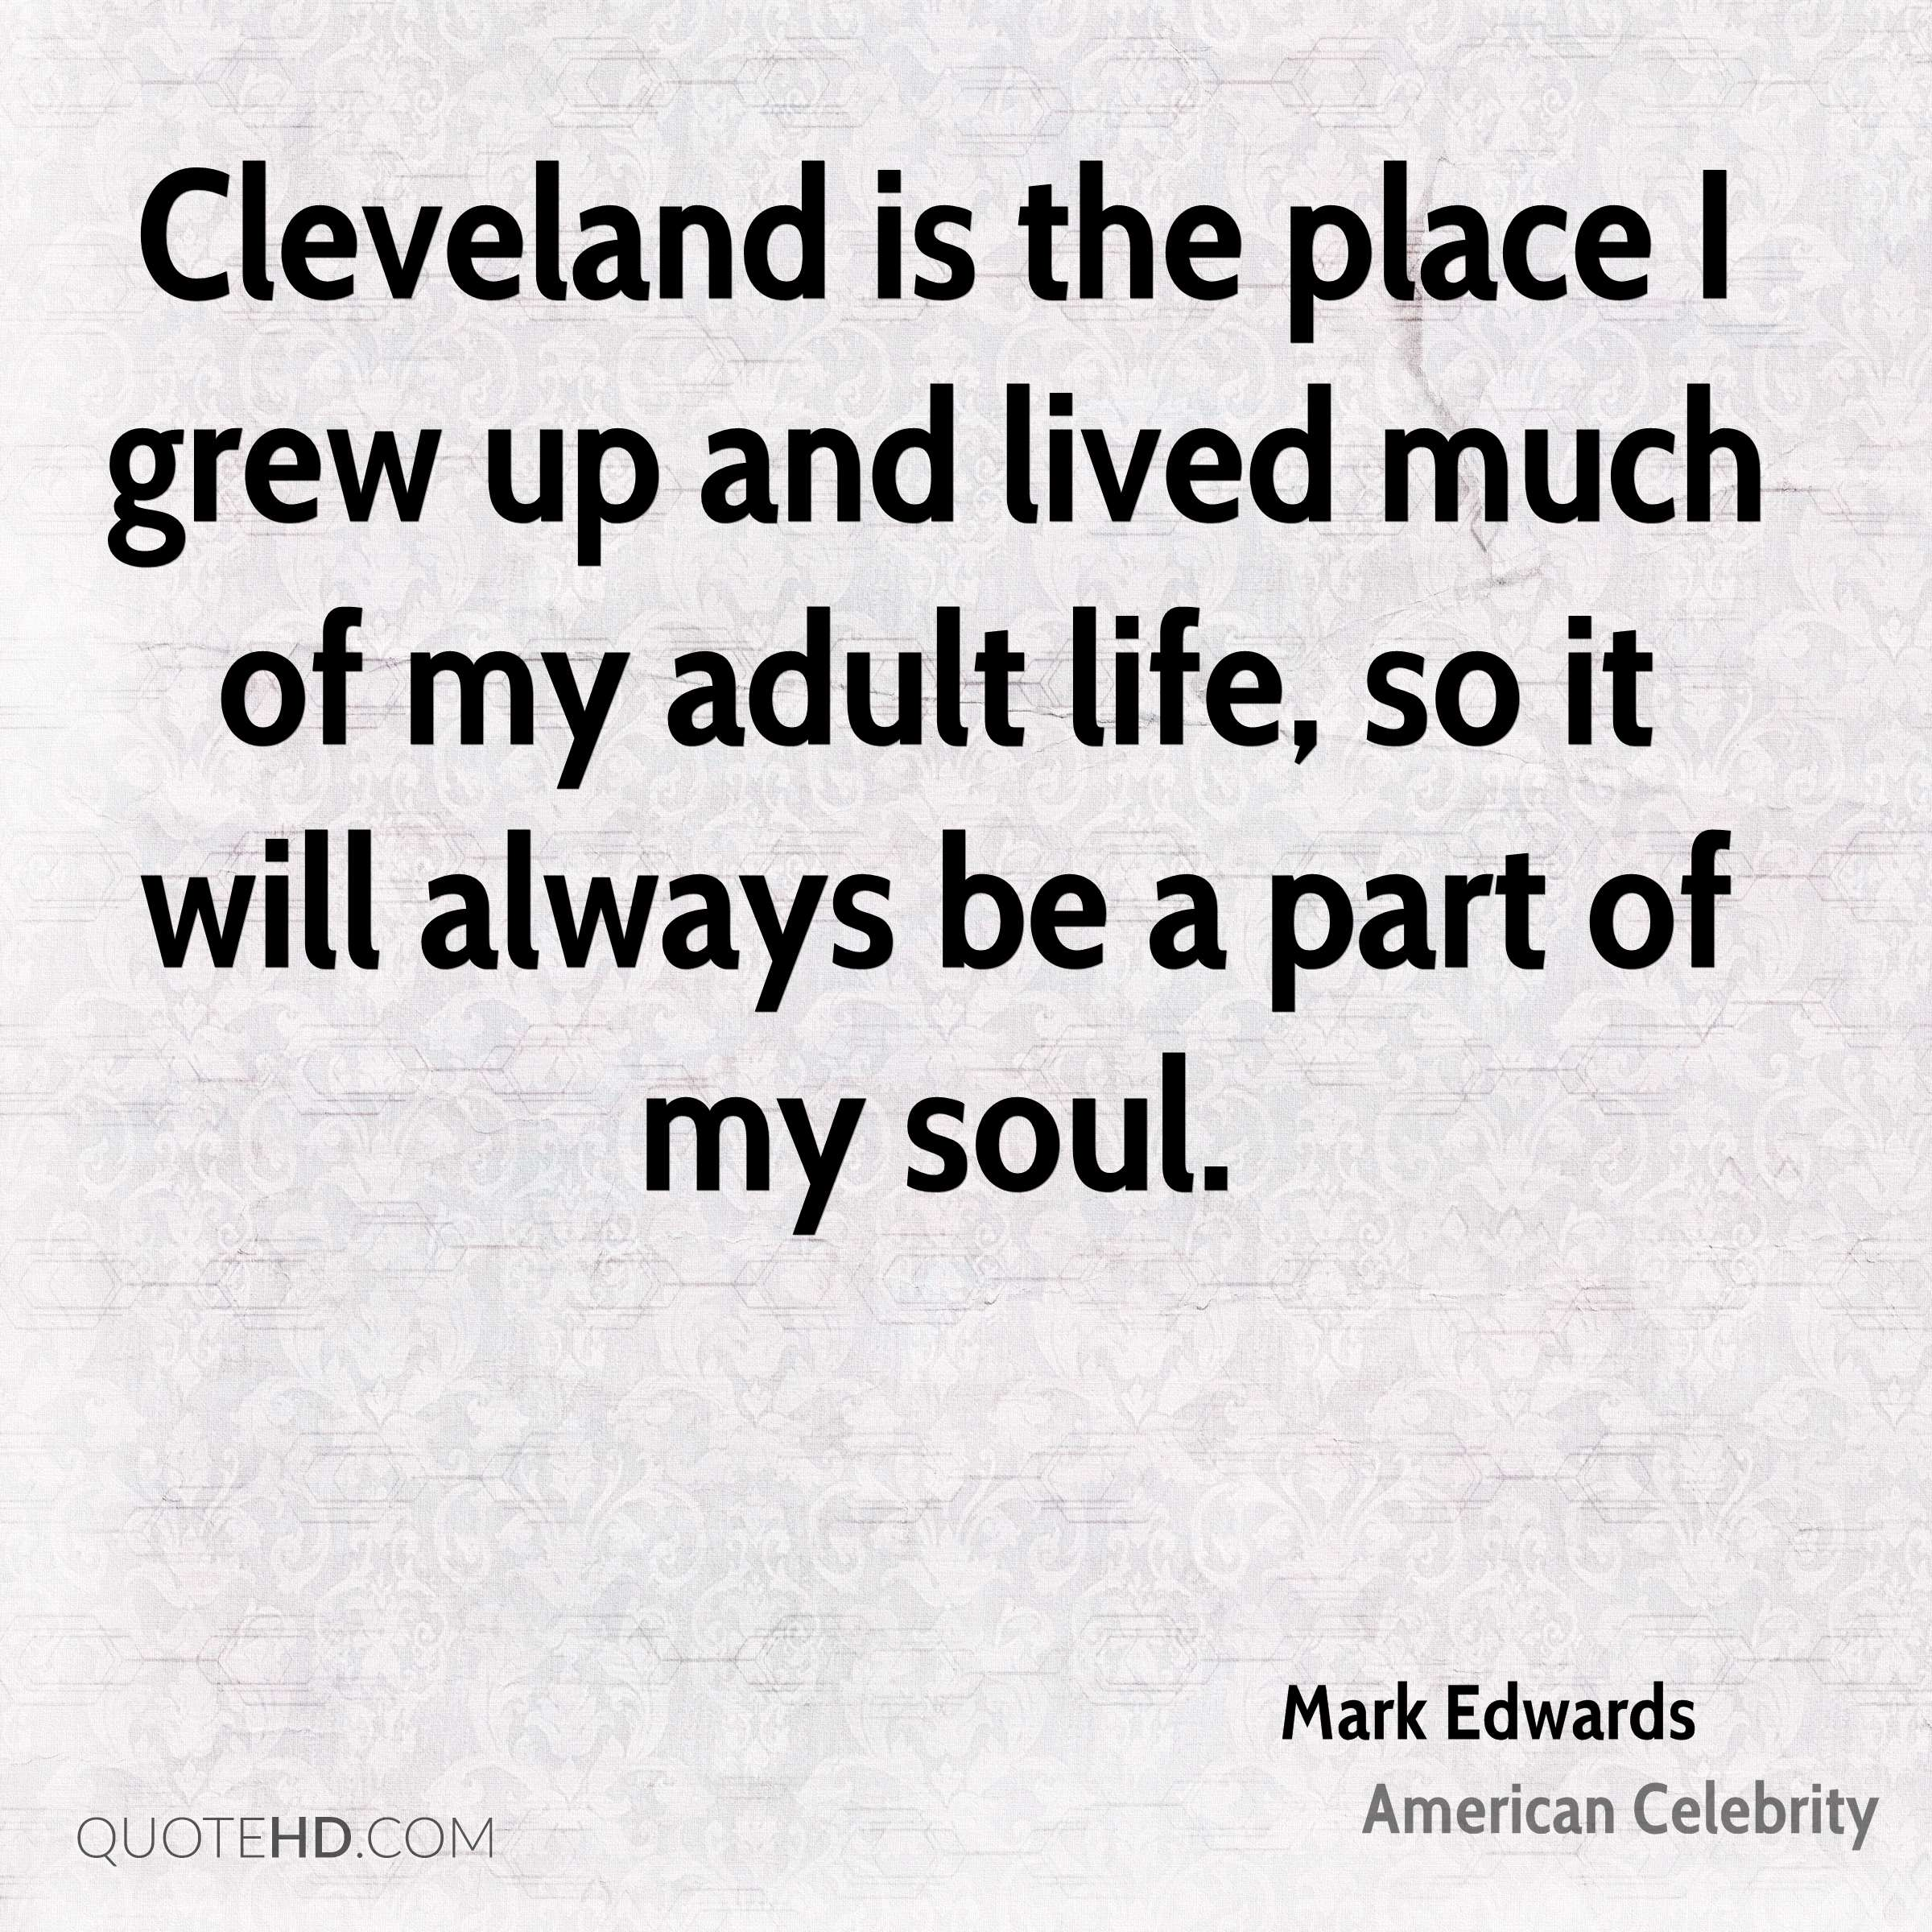 Cleveland is the place I grew up and lived much of my adult life, so it will always be a part of my soul.